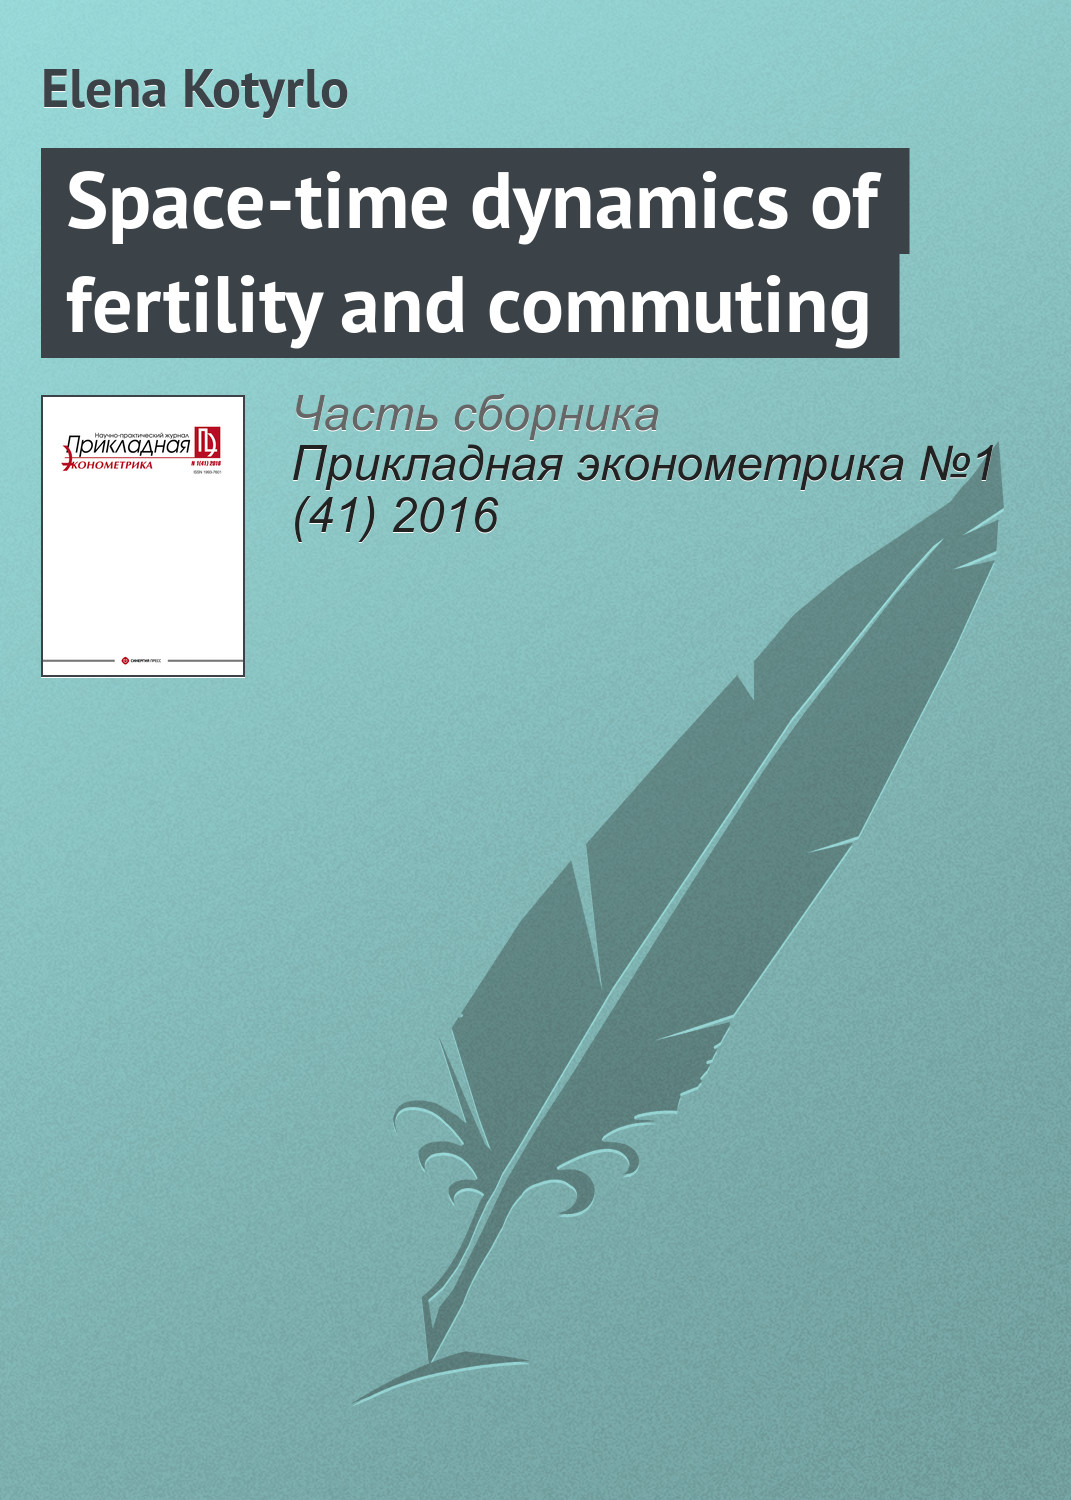 Elena Kotyrlo Space-time dynamics of fertility and commuting effect of fruits of opuntia ficus indica on hemolytic anemia